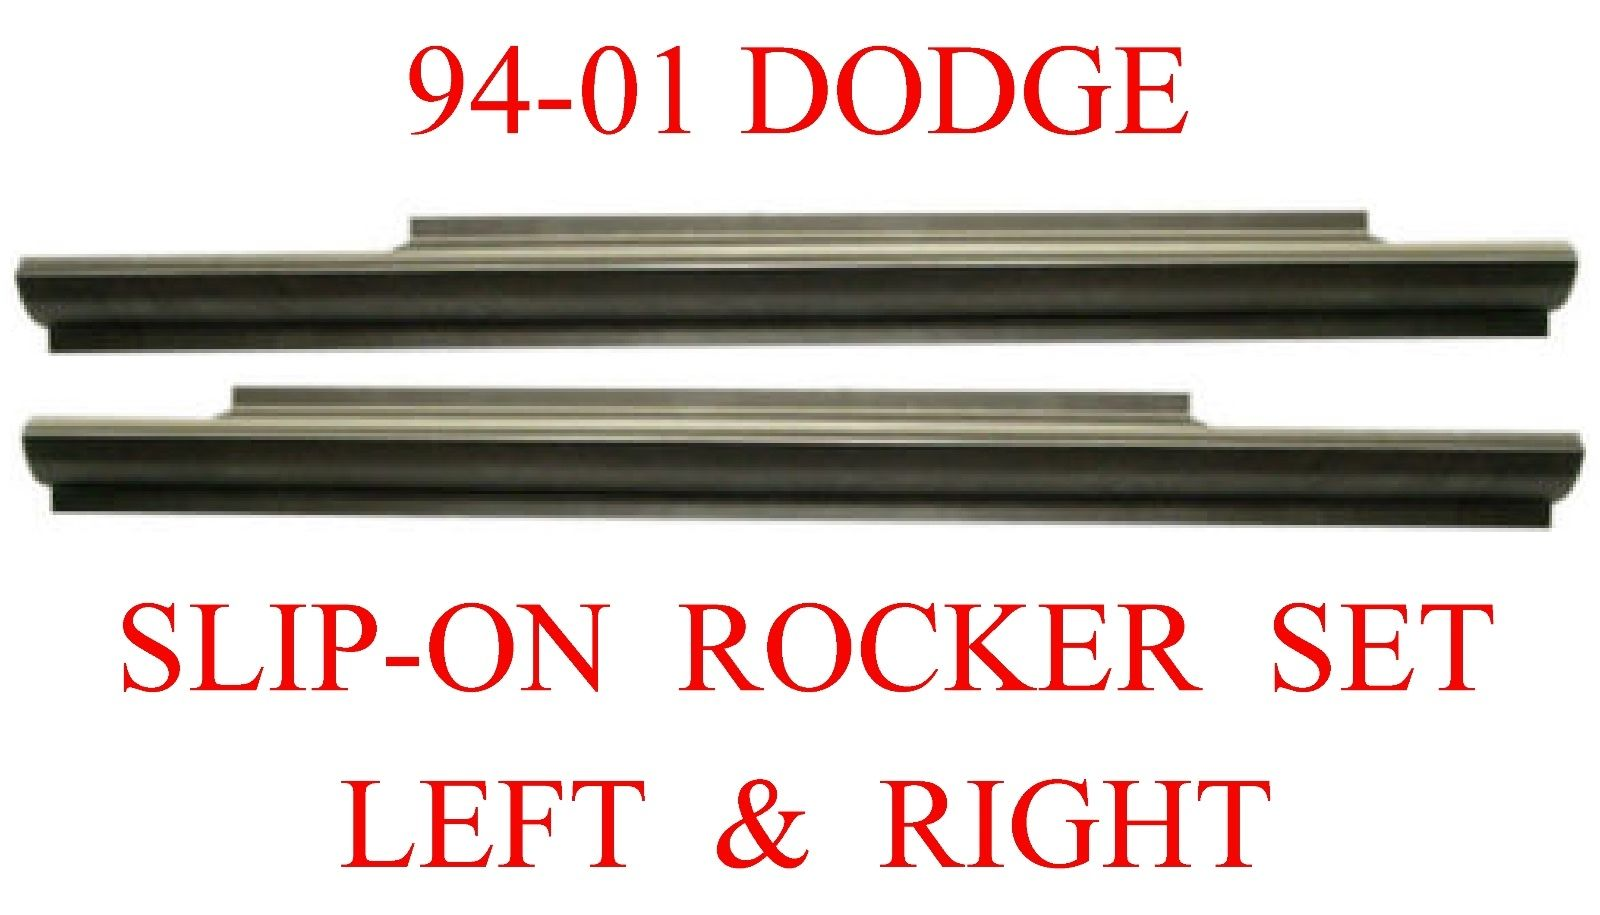 94-01 Dodge Ram Slip-On Rocker Panel Set